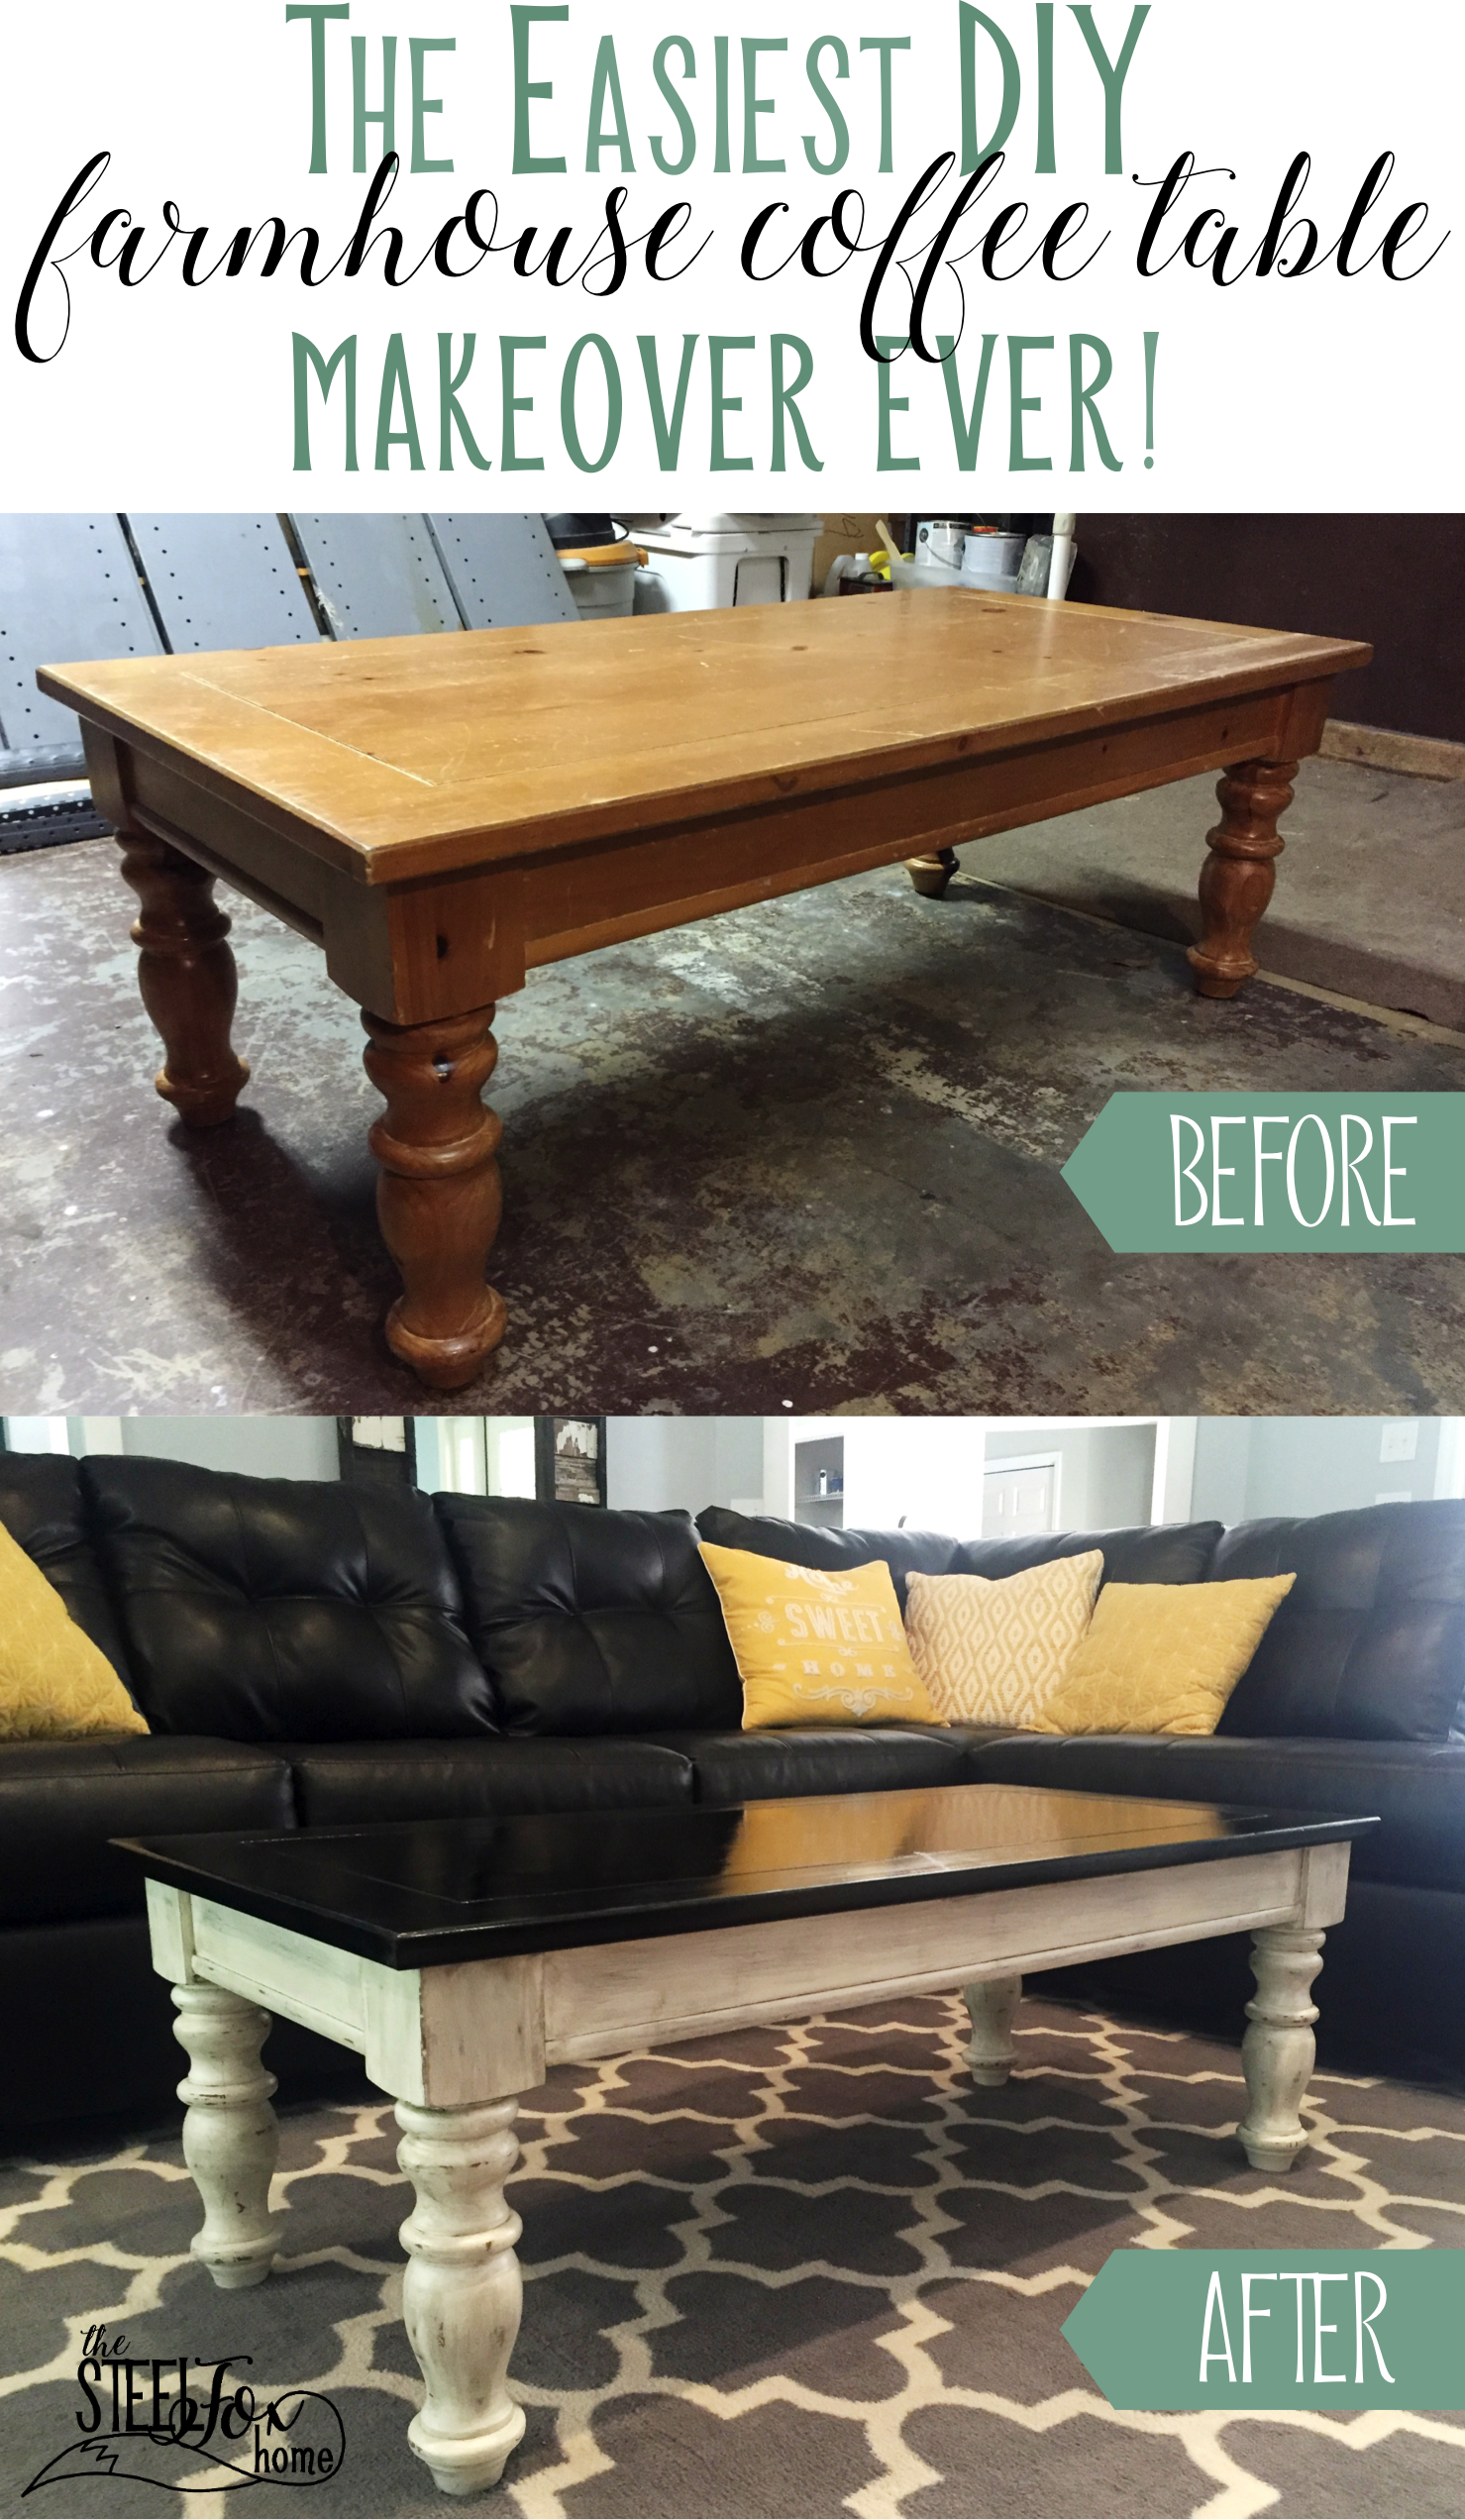 The Easiest Coffee Table Makeover Ever – The Steel Fox Home